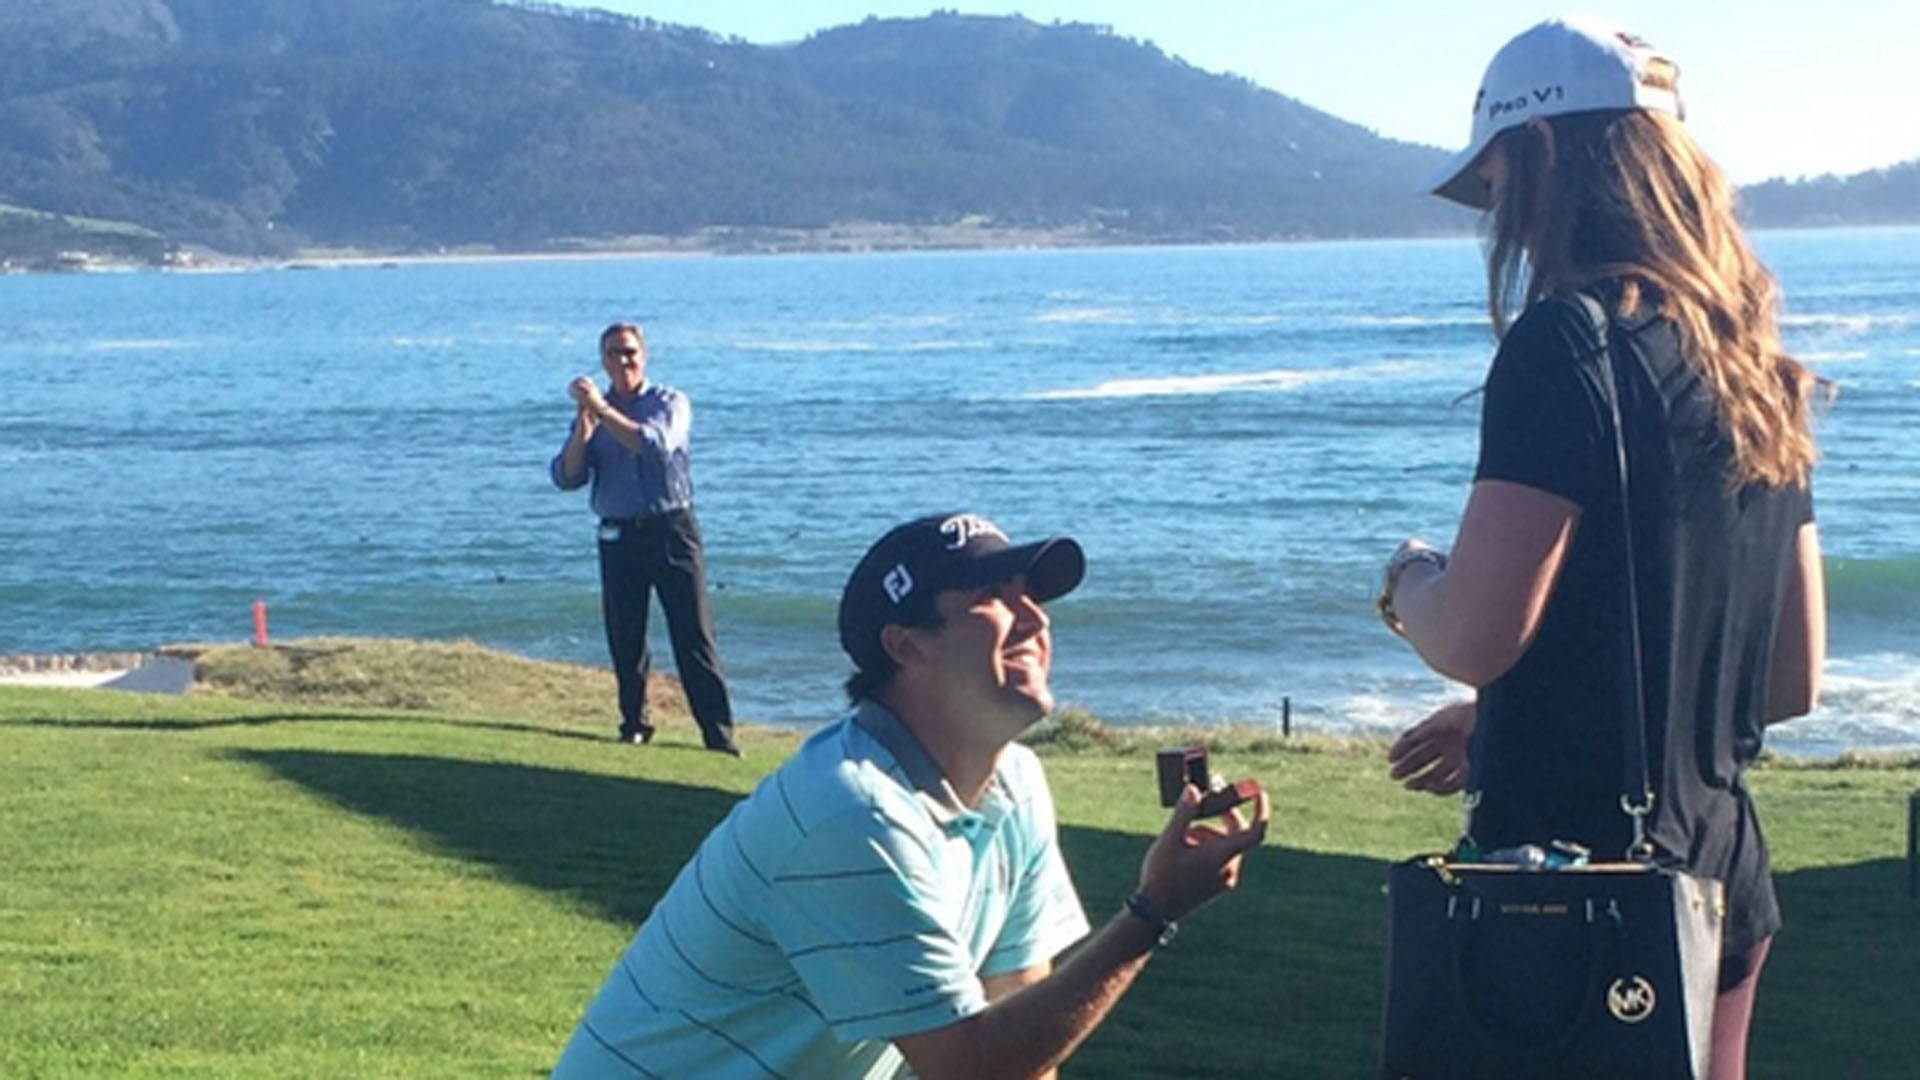 PGA Tour Golfer Proposes To Girlfriend On 18th Hole At Pebble Beach